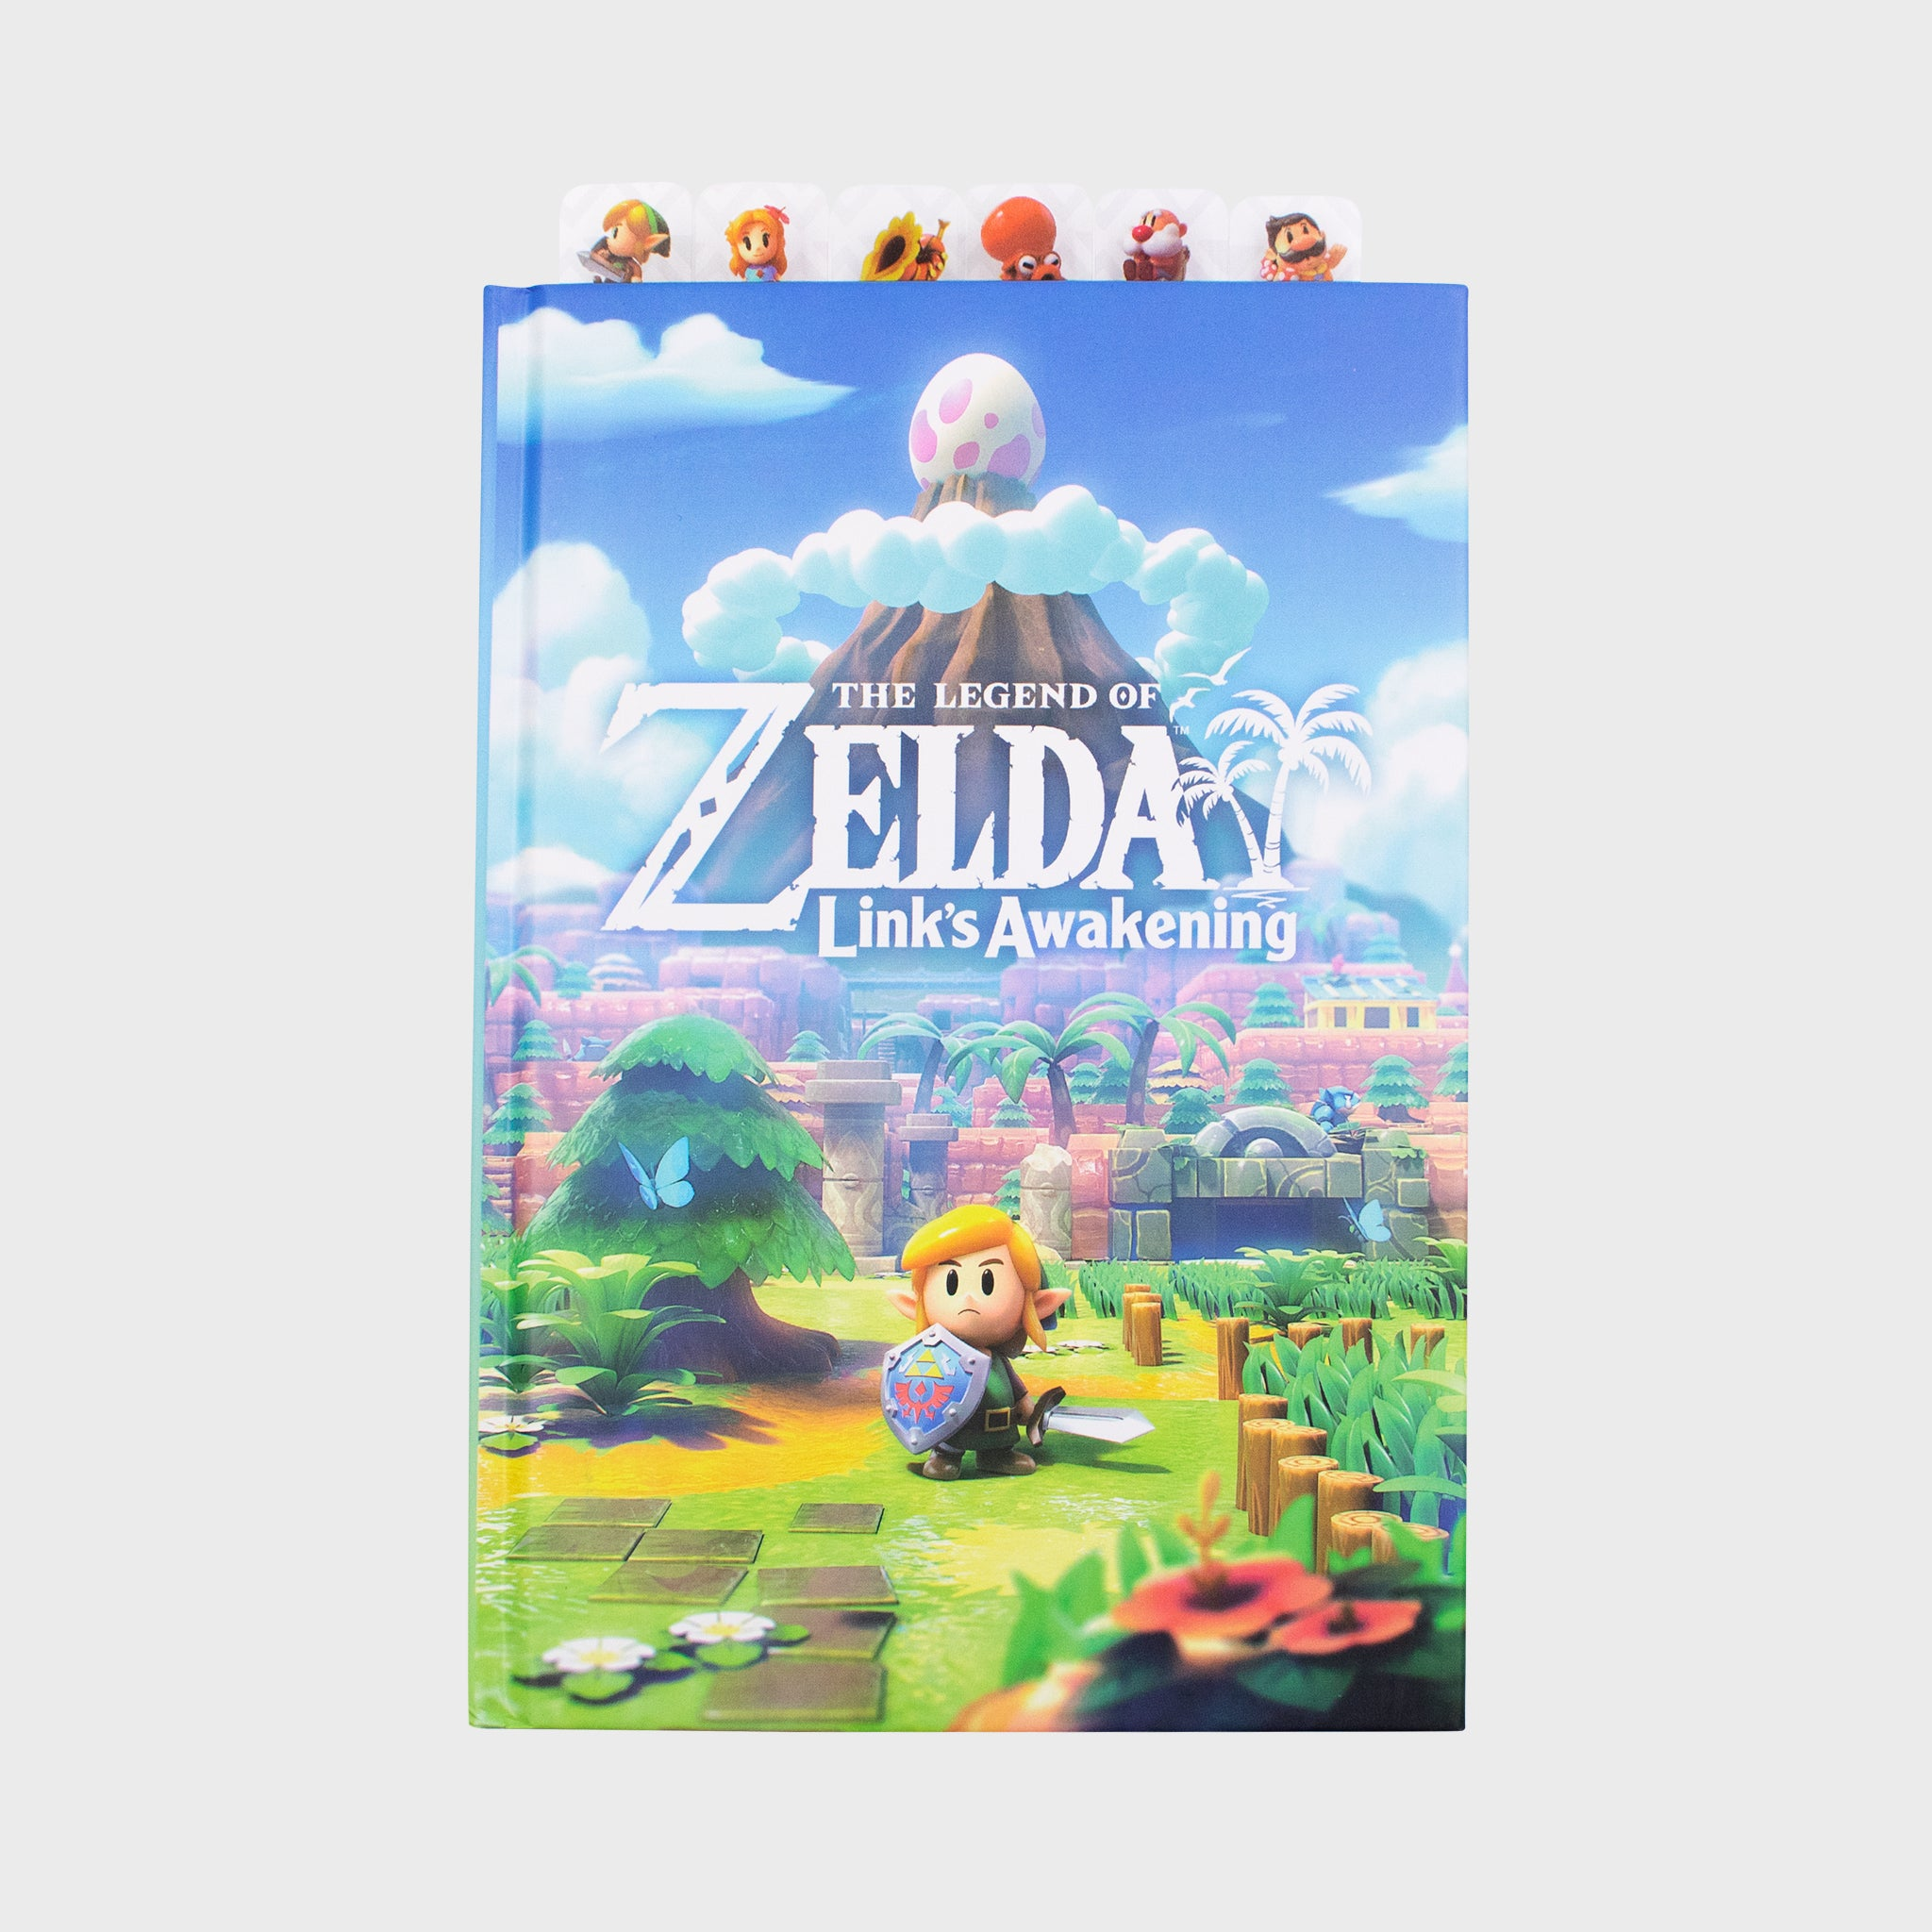 the legend of zelda link's awakening 2019 nintendo loz collector's box exclusive collectible journal notebook bookmarks culturefly